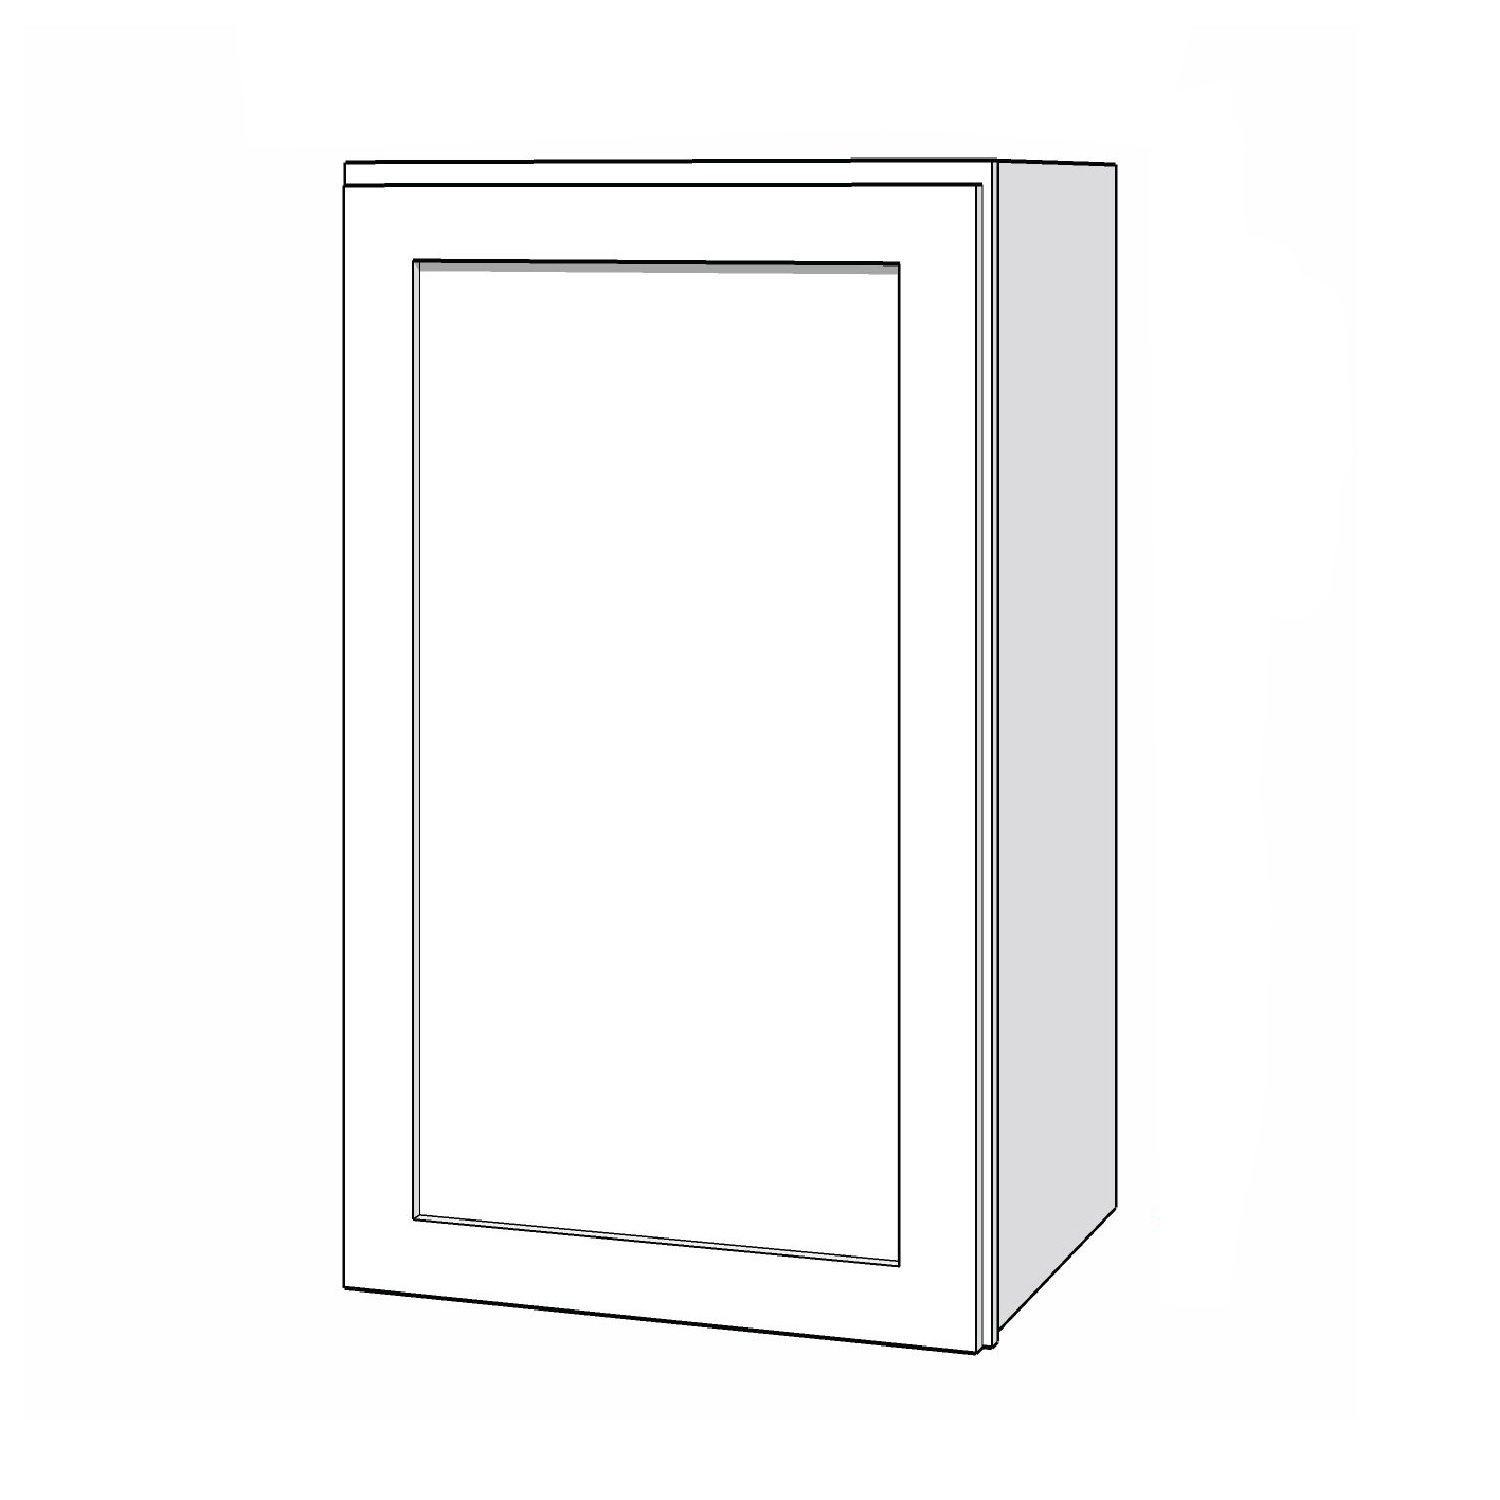 Wall Cabinet - 18in. x 30in. - White